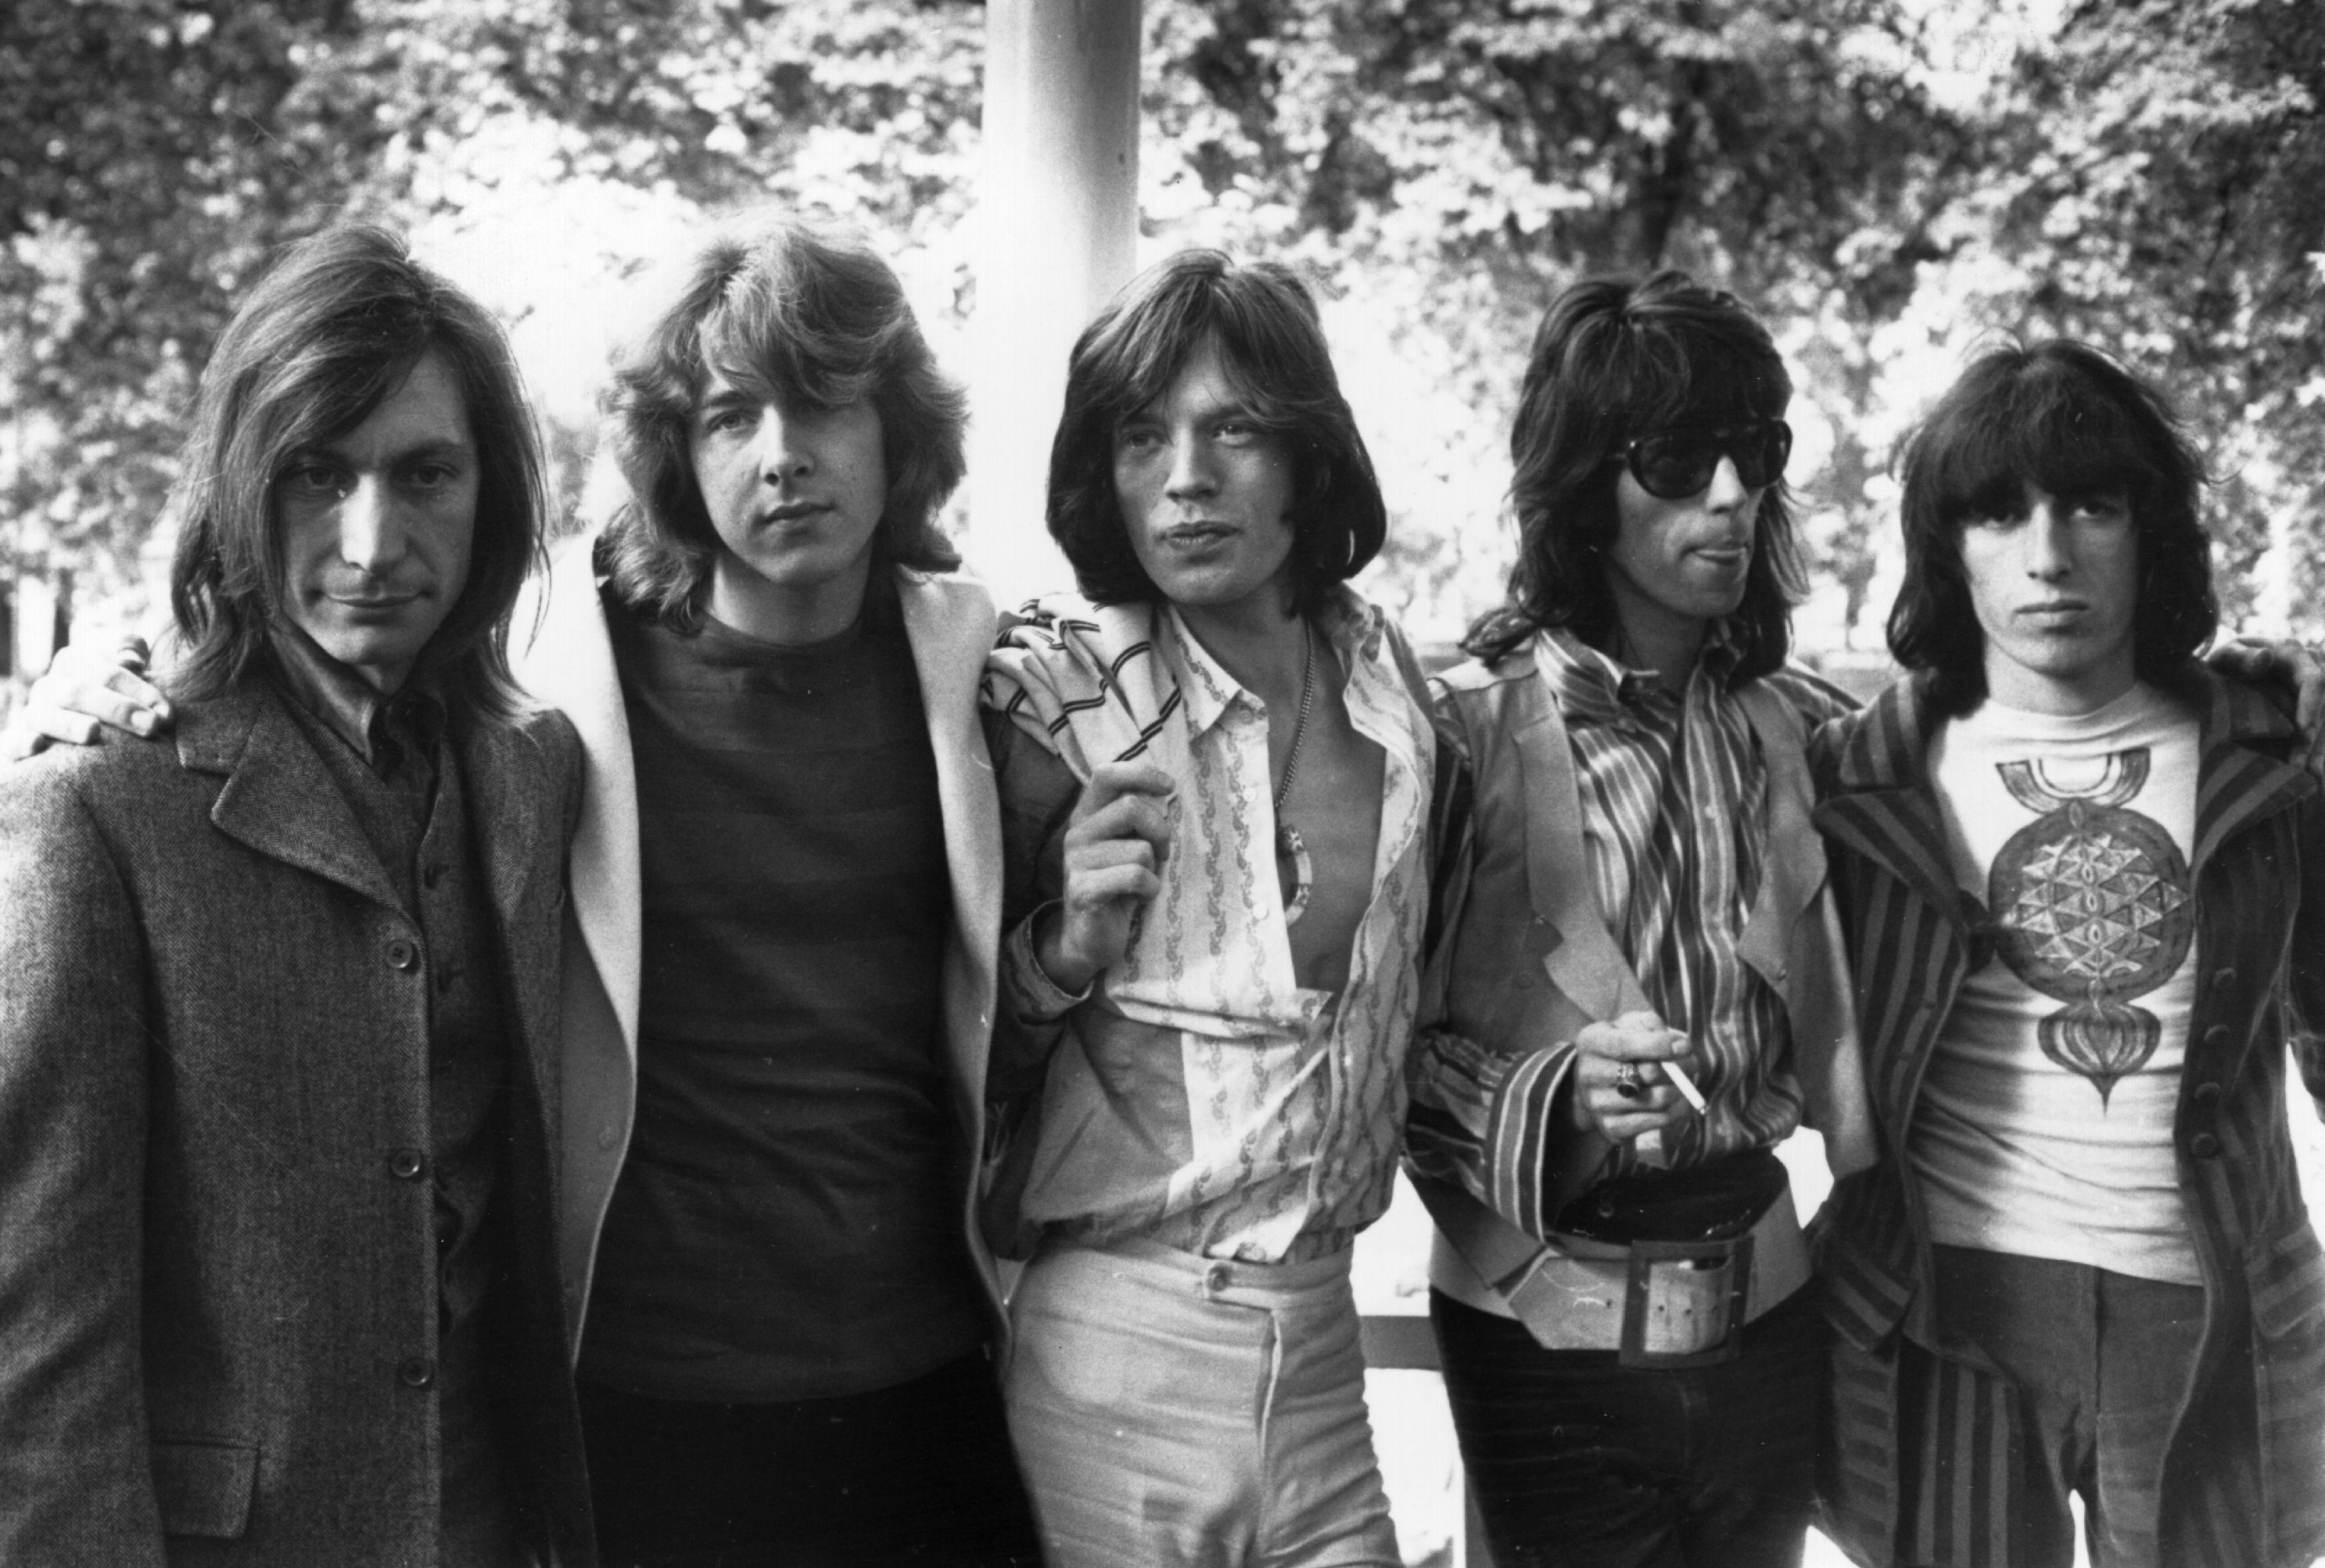 The Rolling Stones Fall 1969 Tour - Rolling Stone